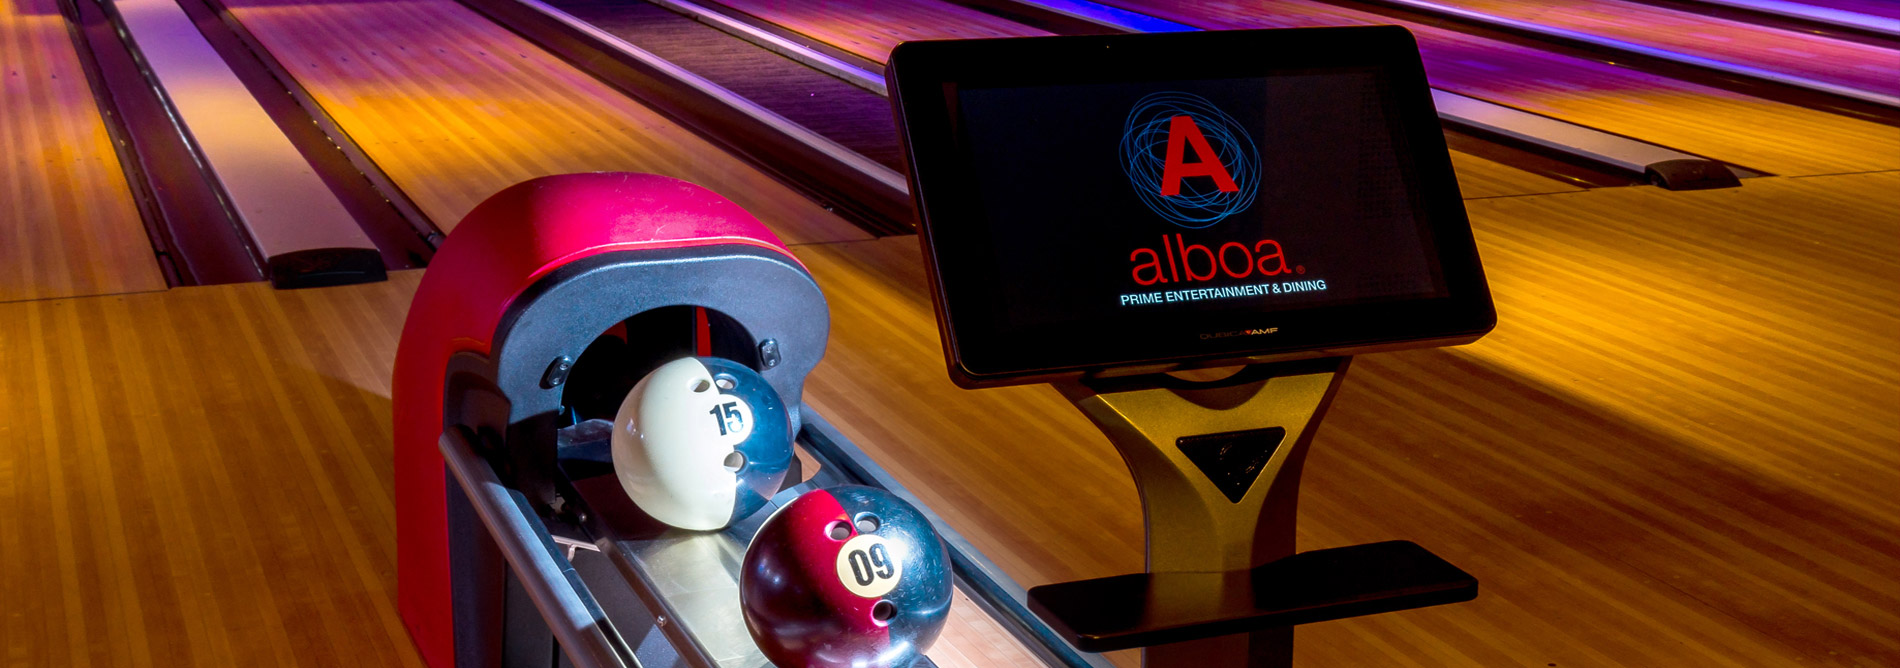 Bowling-QubicaAMF-score-bowler-consoles--features-banner.jpg